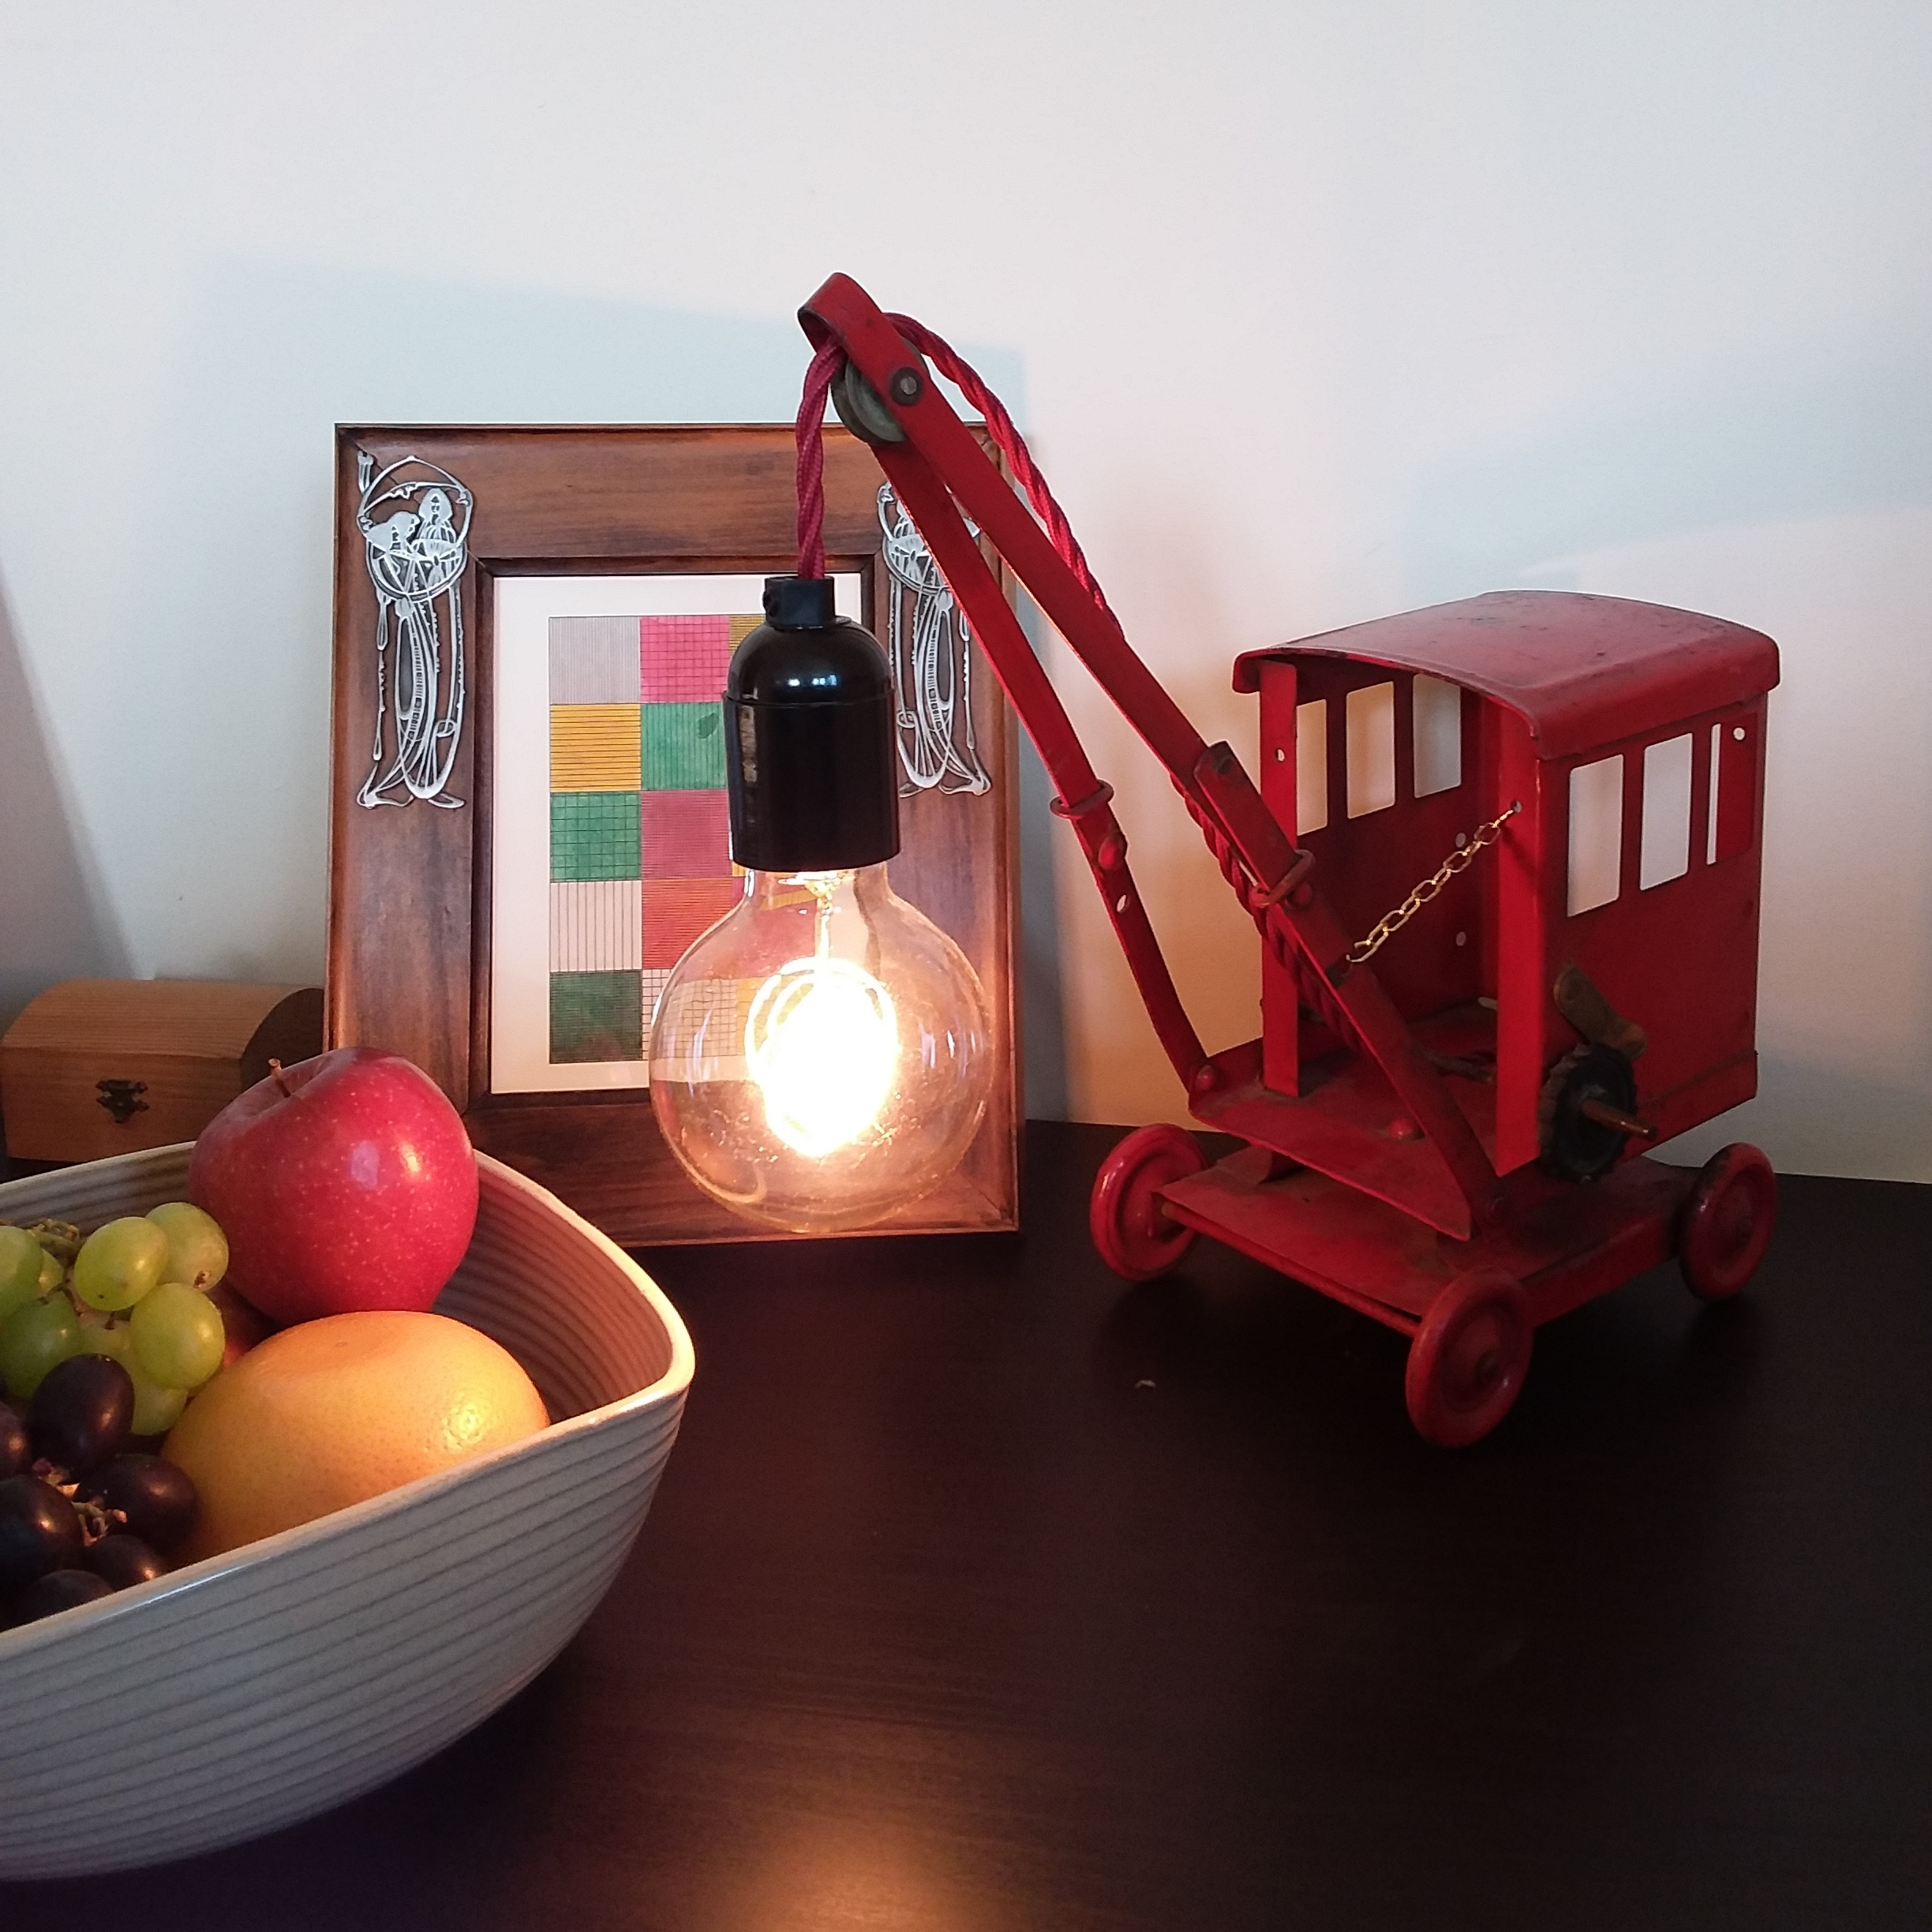 """Loved by... Phil in Morden  """"Love this lamp by Winter Bear Home. A little quirky addition to lighten up my evenings!"""""""